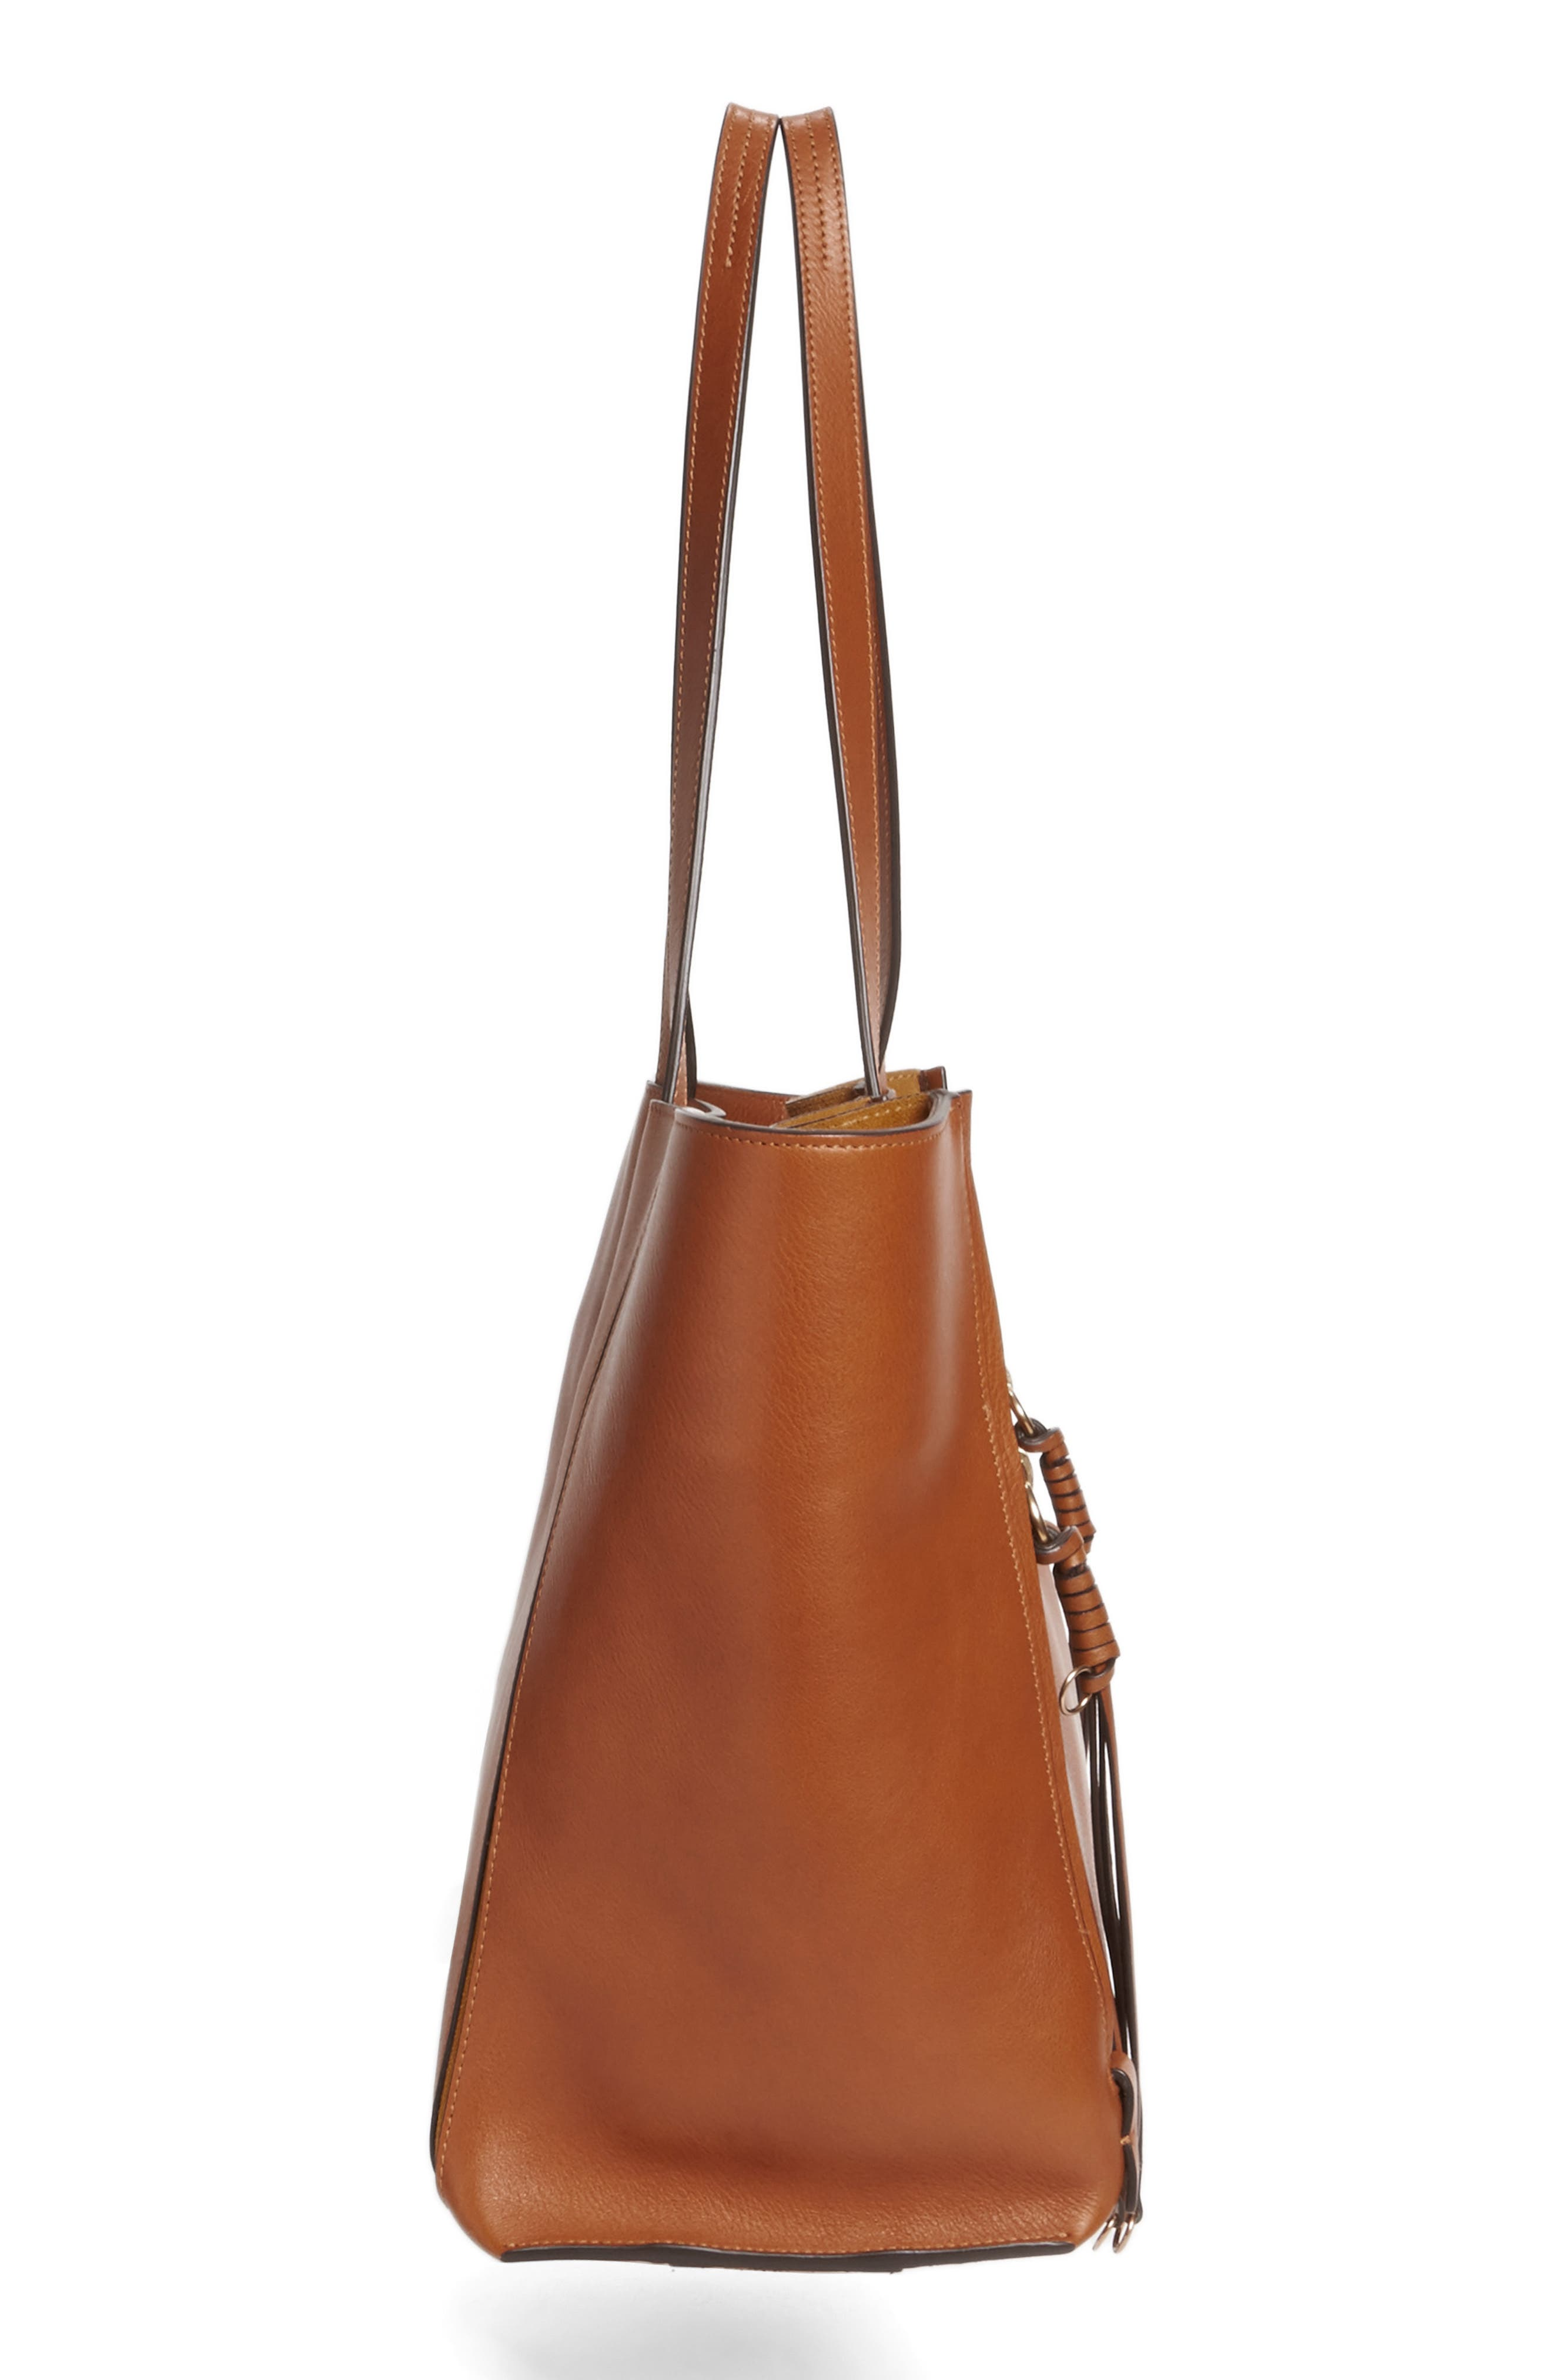 Medium Milo Calfskin Leather Tote,                             Alternate thumbnail 7, color,                             Caramel